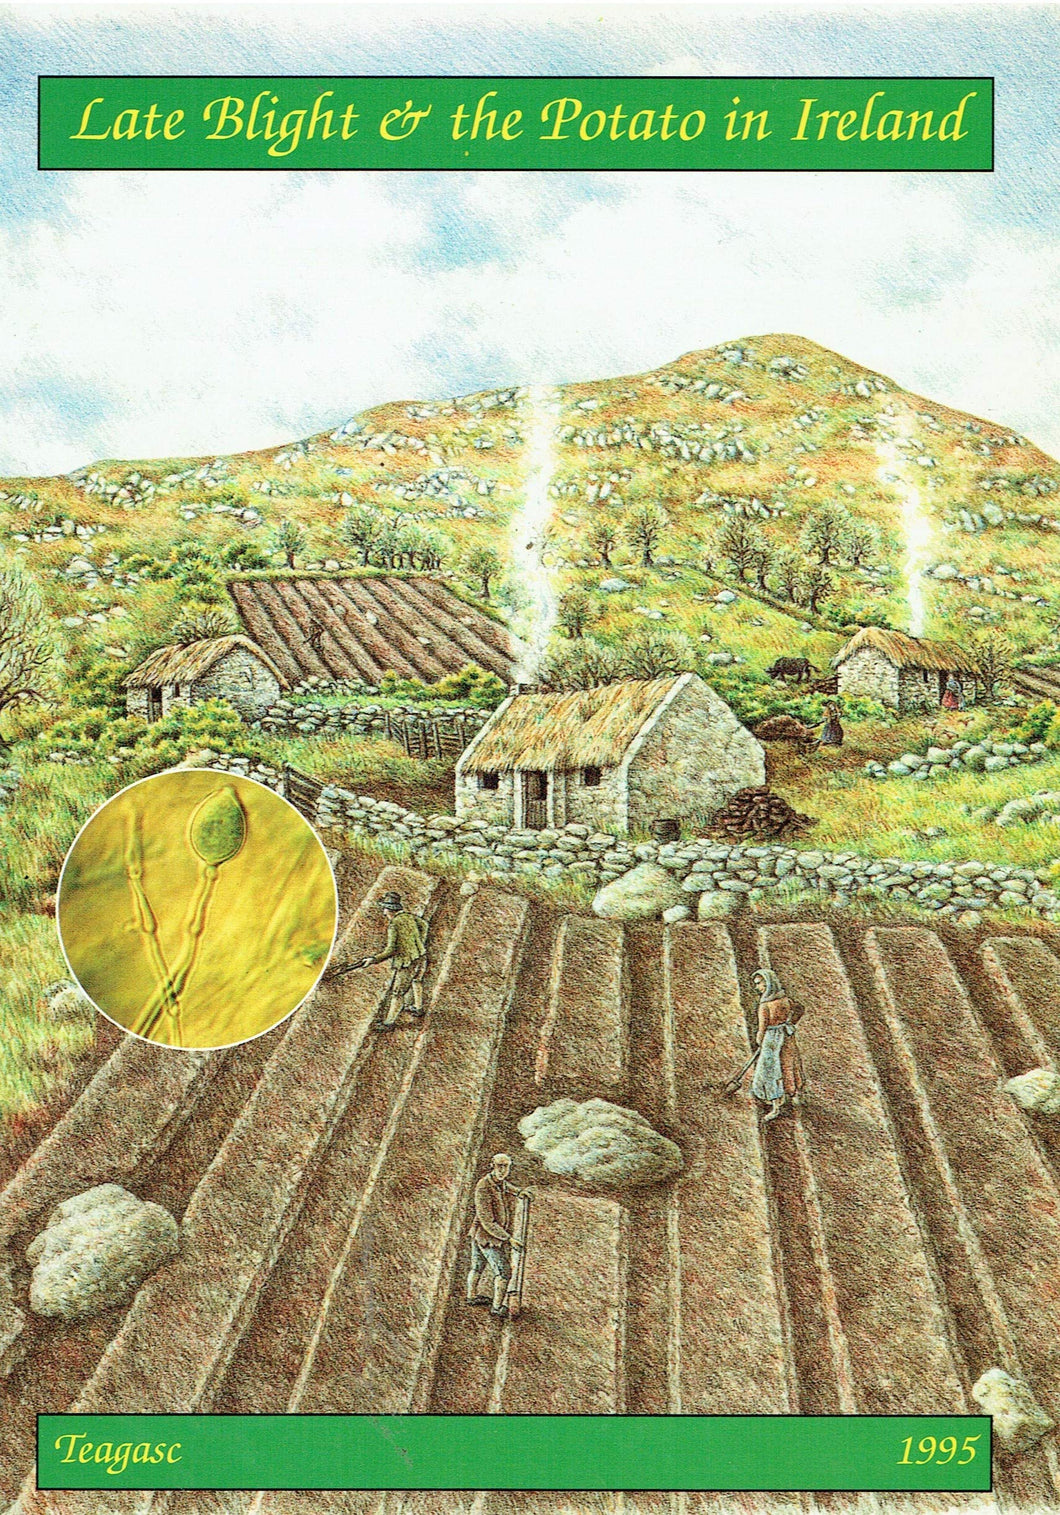 Late Blight and the Potato in Ireland: A Short History of the Potato, the Famine, Late Blight and Irish Research on Phytophthora Infestans